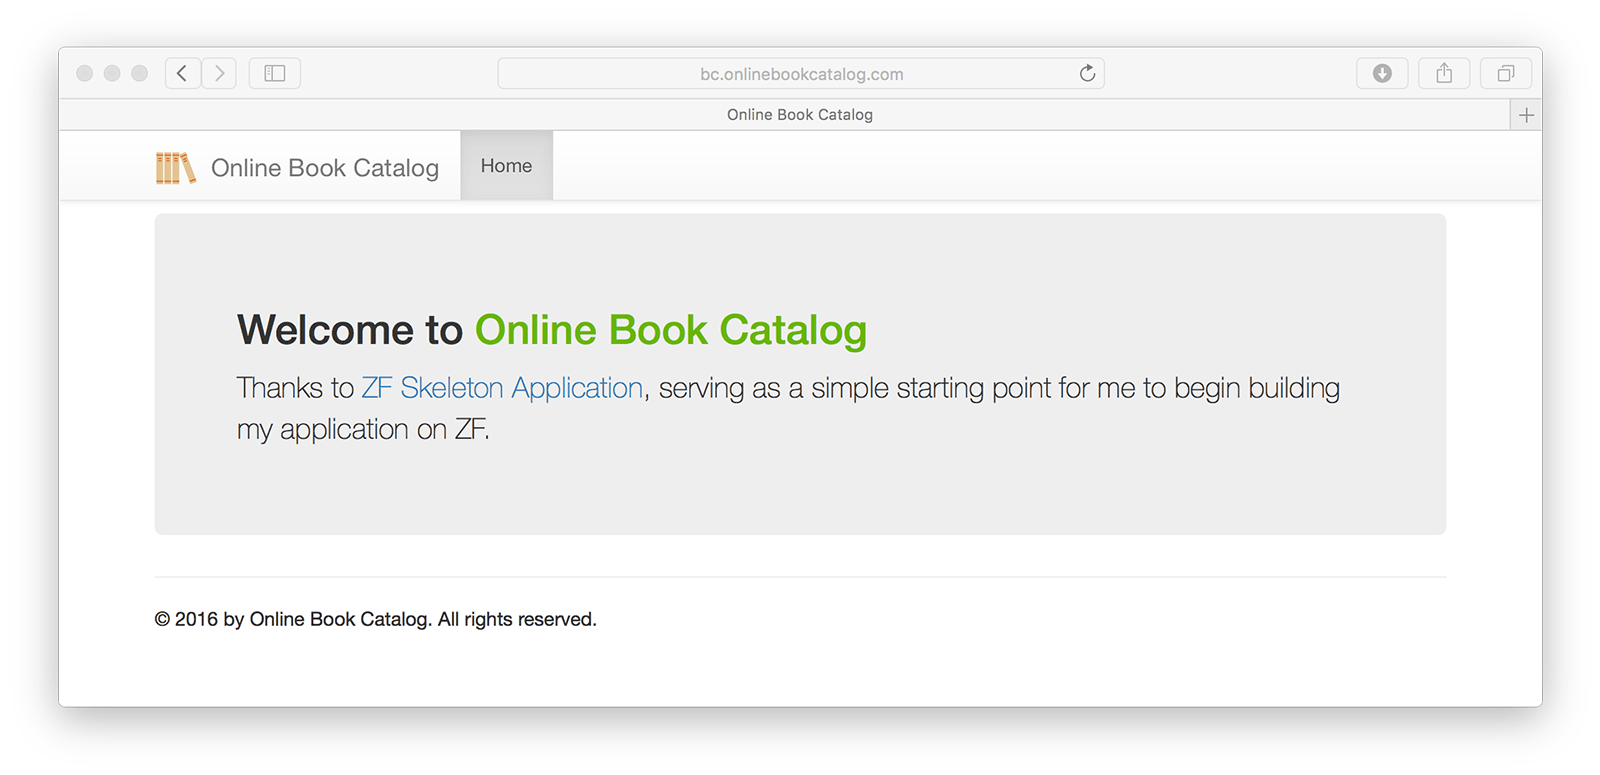 Customized look of the Online Book Catalog.